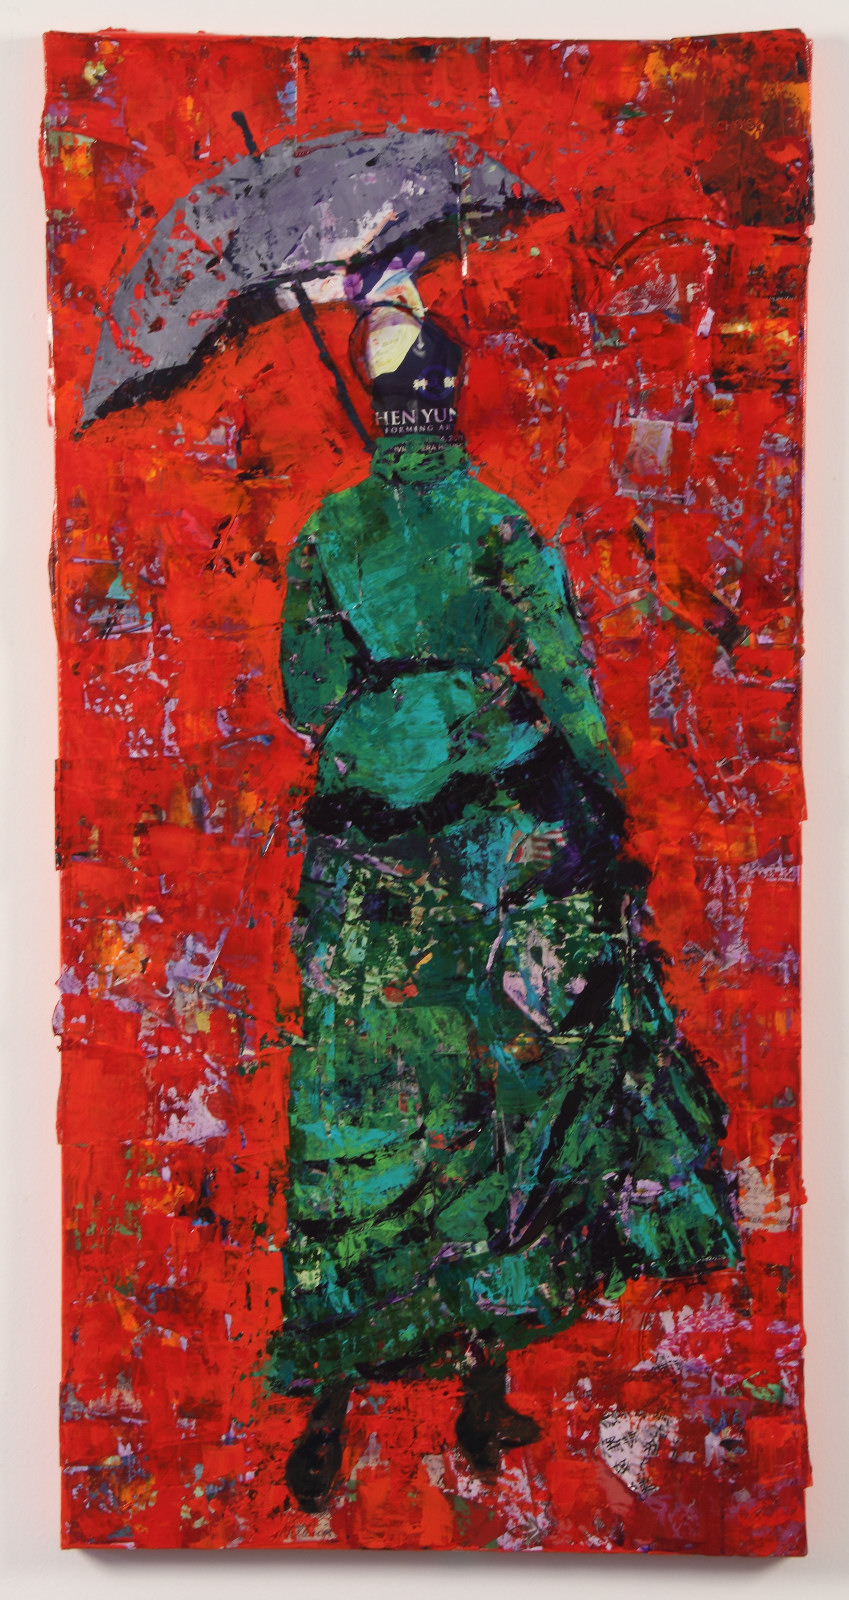 Inclement: green on red, 48 x 20, Mixed Media